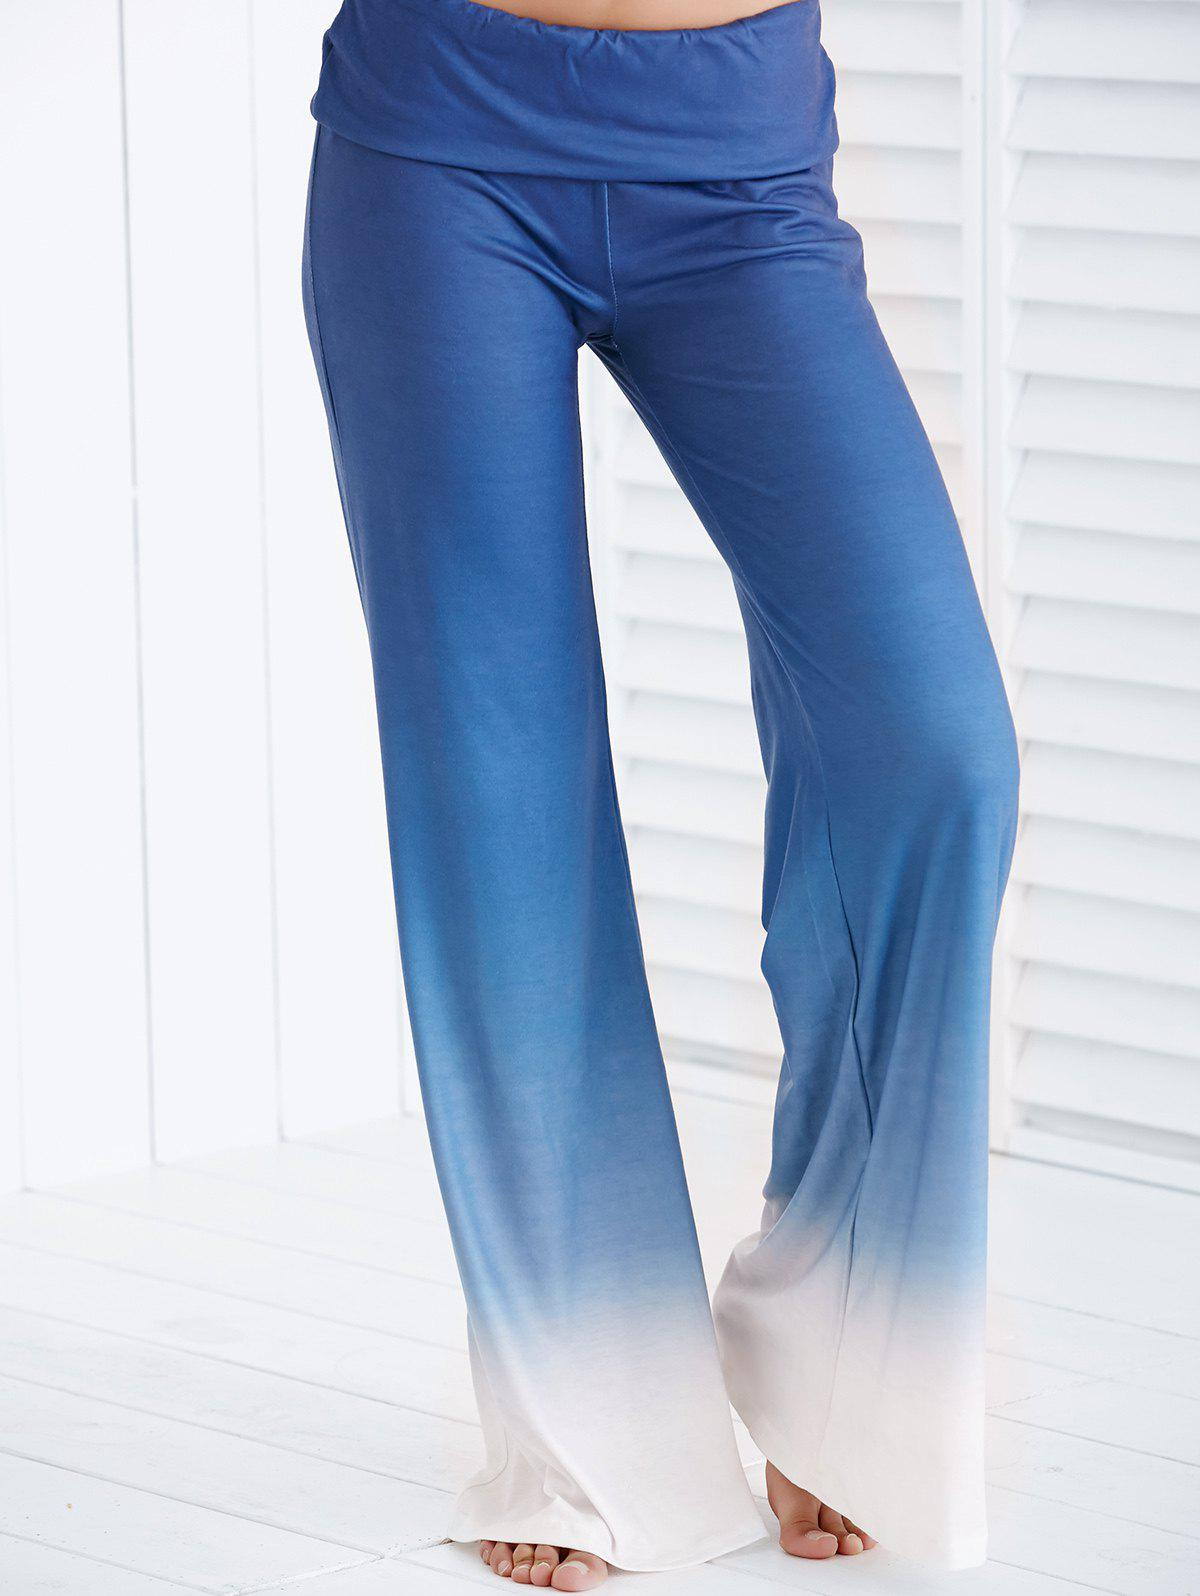 Discount Chic Elastic Waist Ombre Loose-Fitting Women's Pants